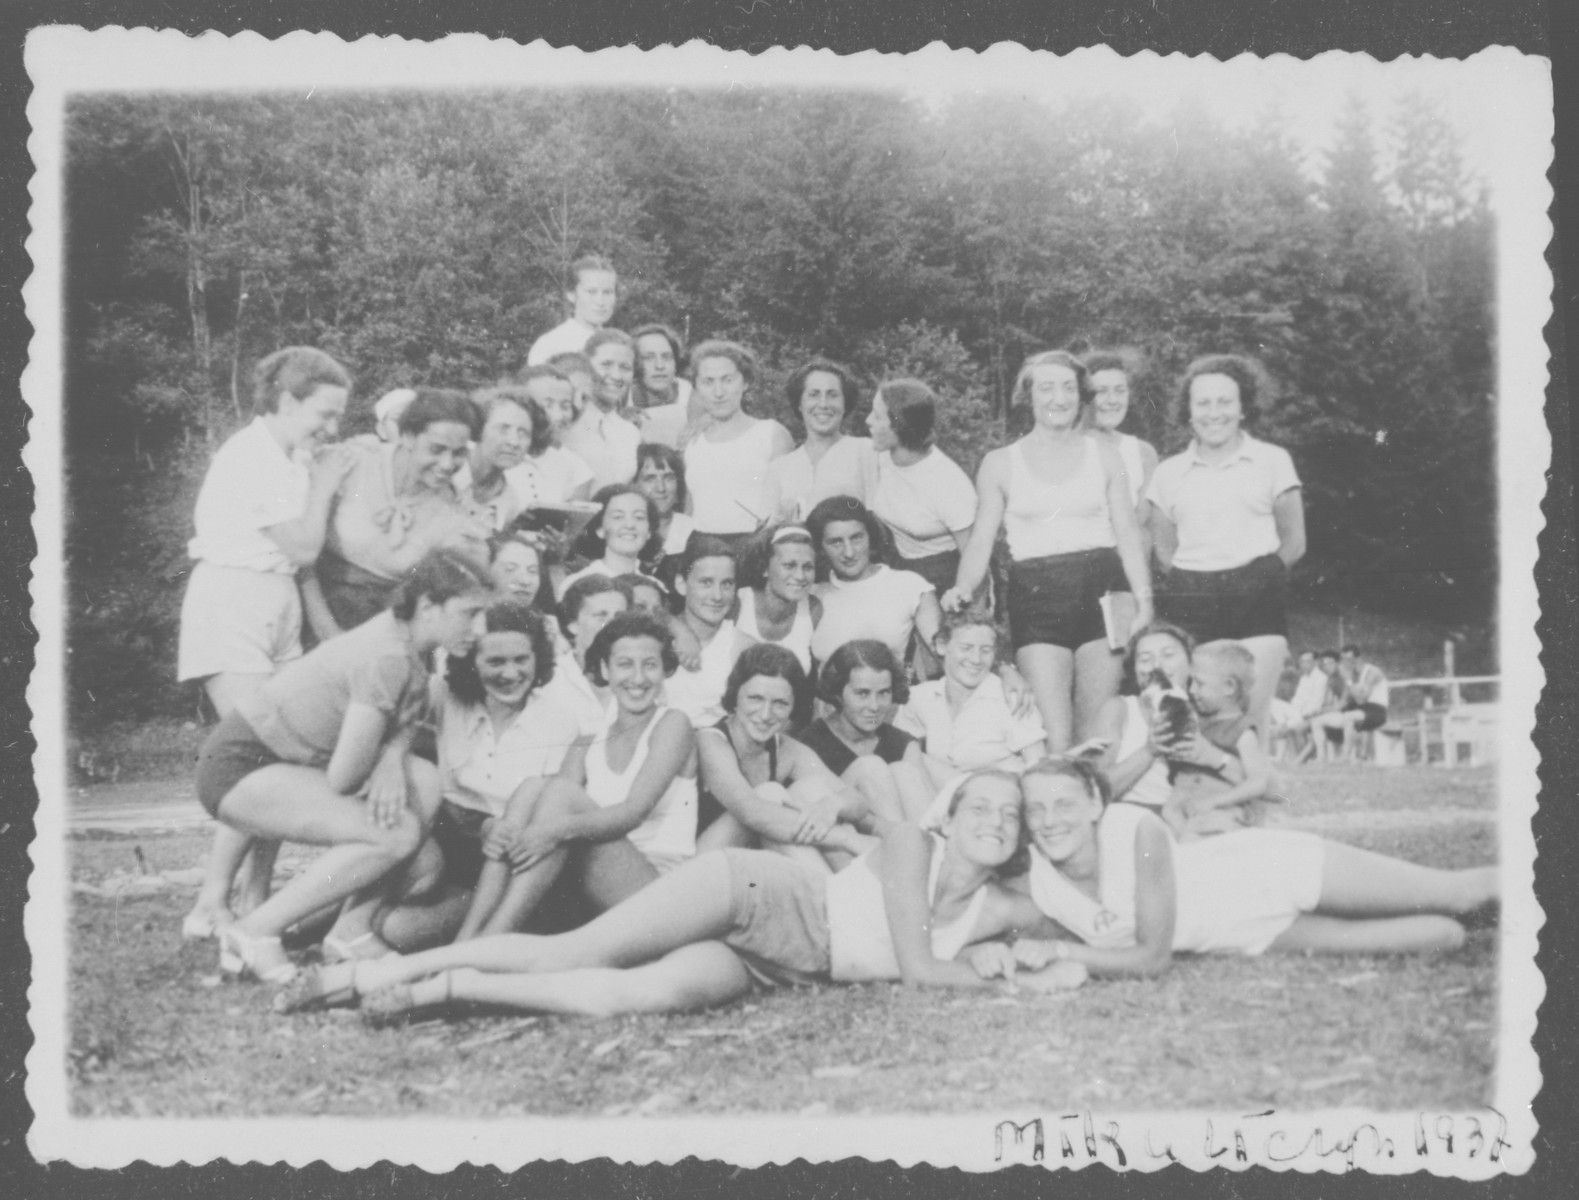 Group portrait of girls in a sports camp.  Among those pictured is Liza Grochowska.